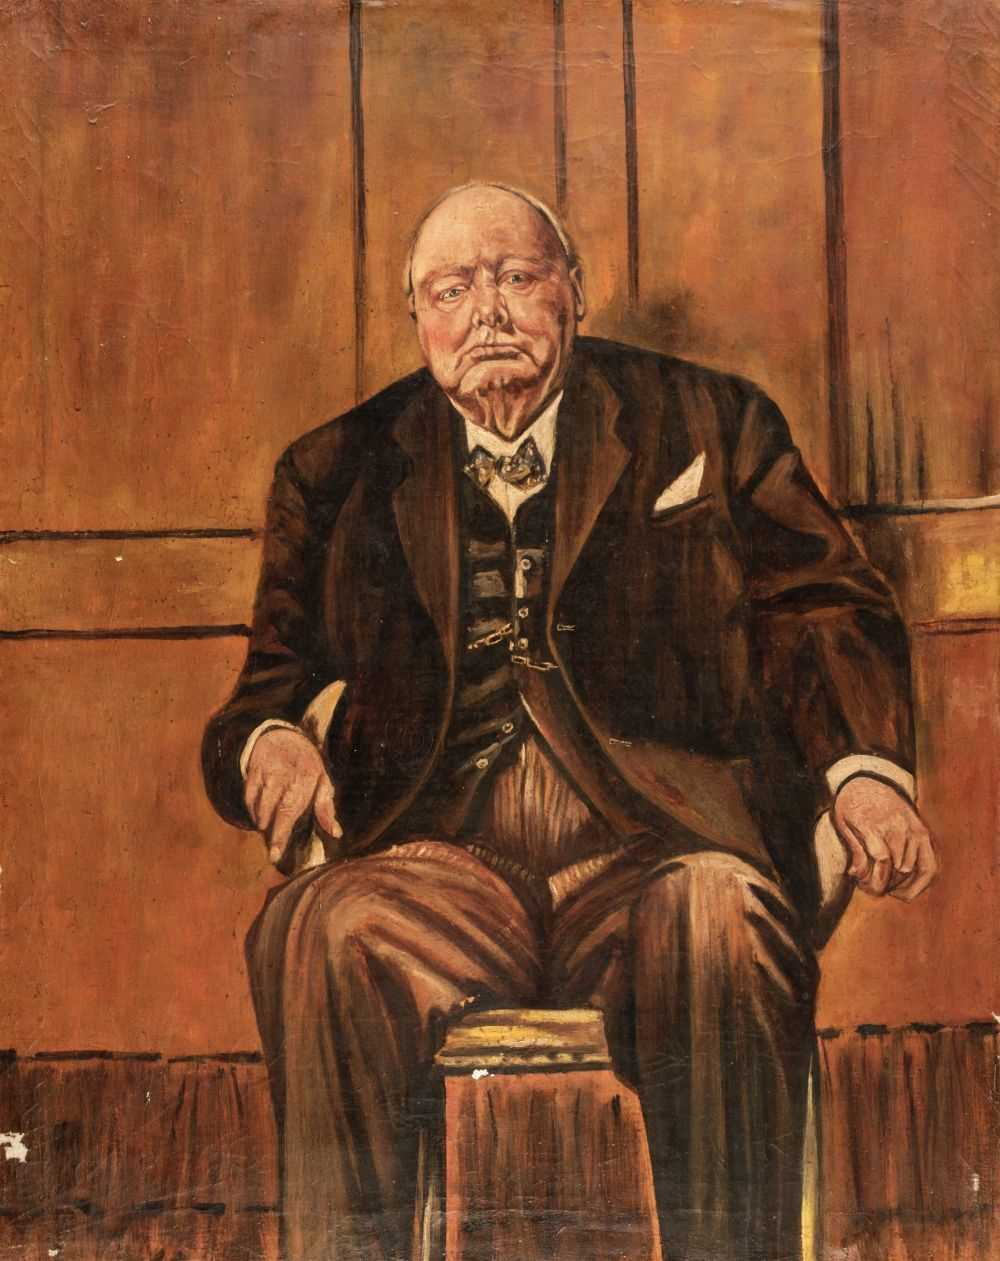 Winston Churchill Painting By Sutherland : winston, churchill, painting, sutherland, Sutherland, (Graham,, 1903-1980,, After).